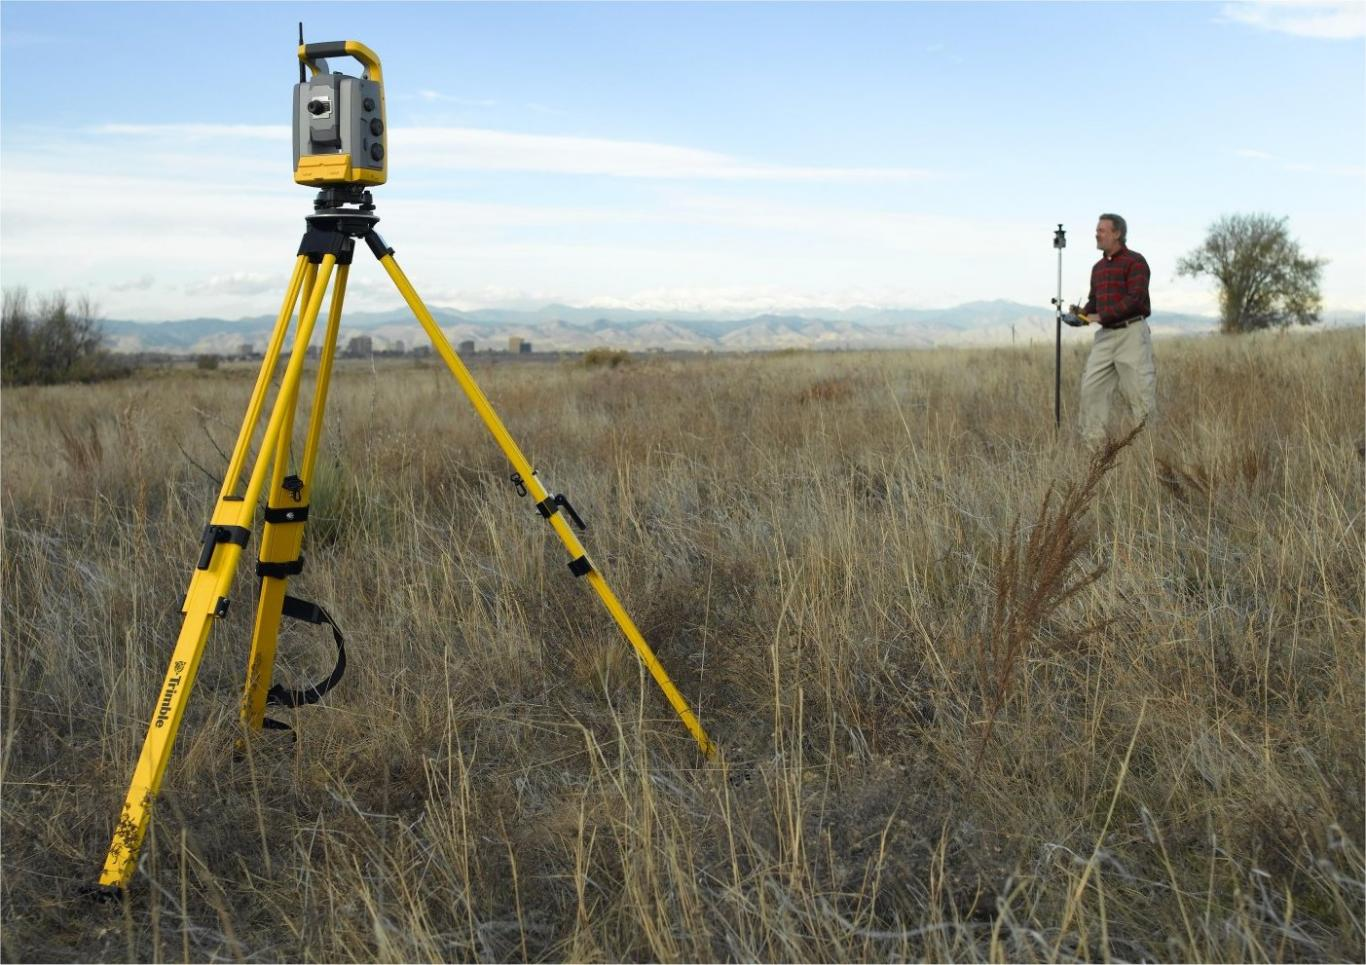 topo surveys b and b surveying company houston texas land surveyors 4150